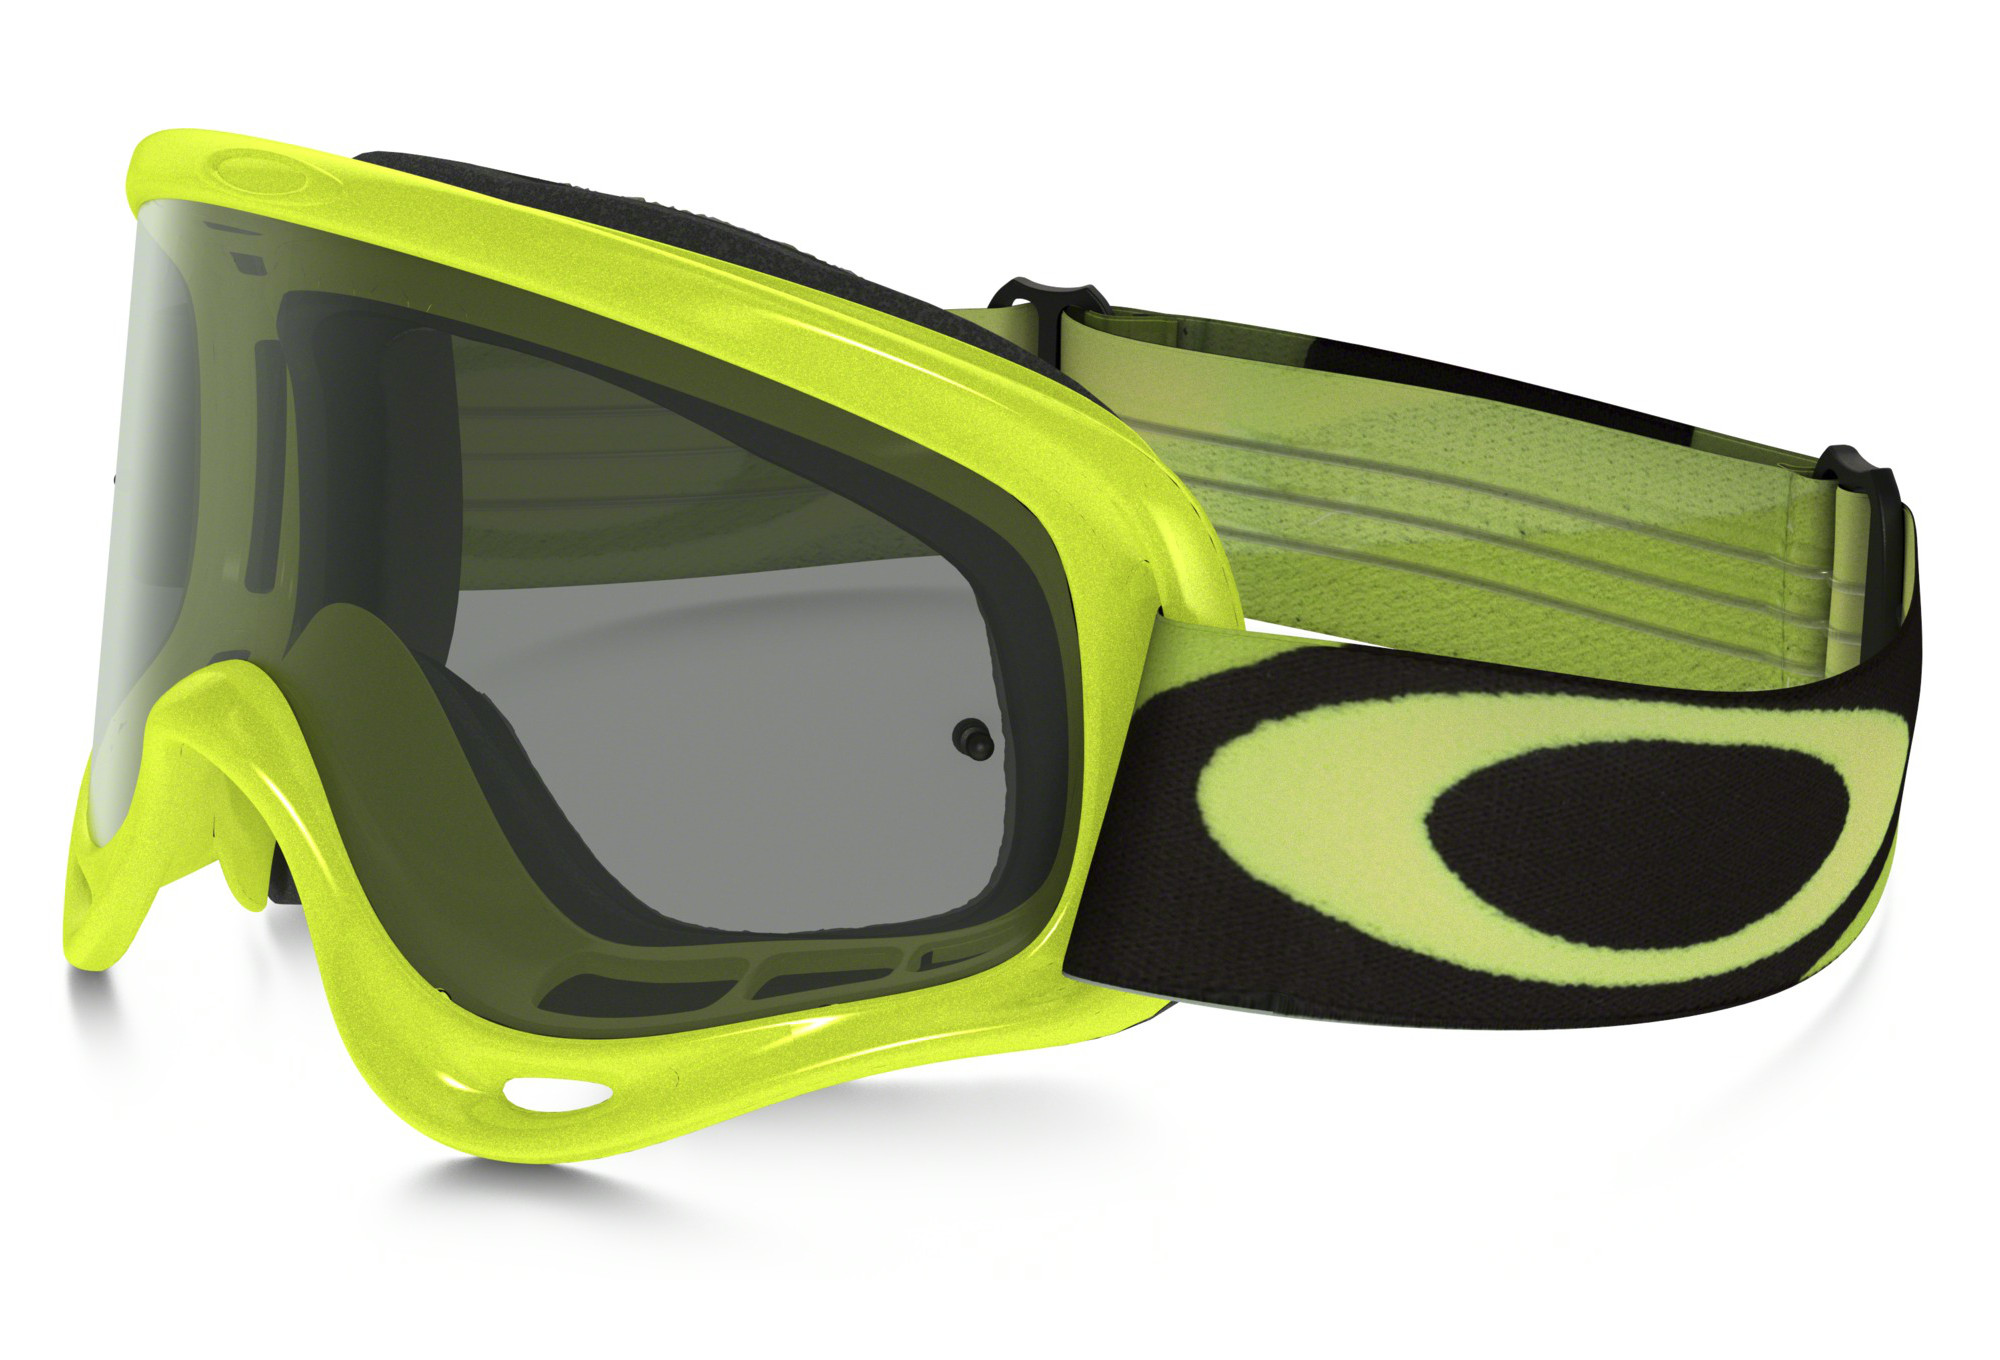 masque oakley o frame mx heritage racer vert jaune noir ref oo7029 30. Black Bedroom Furniture Sets. Home Design Ideas